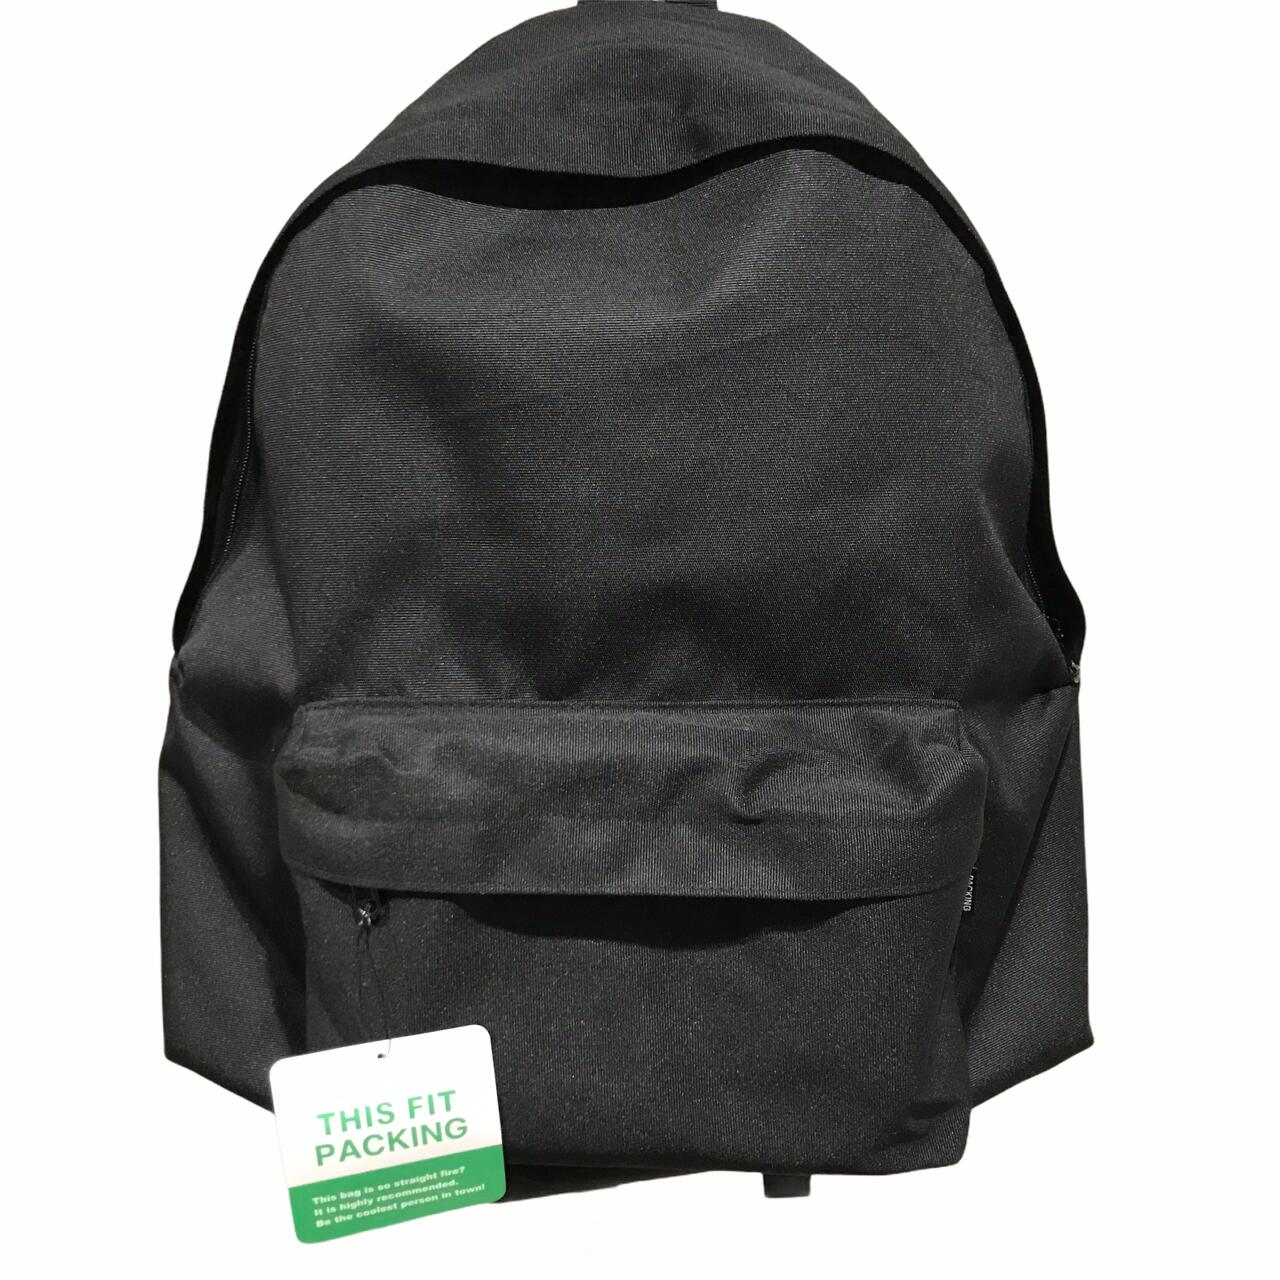 PACKING 今季も再入荷 BACKPACK パッキング バックパック 10%OFF リュックサック